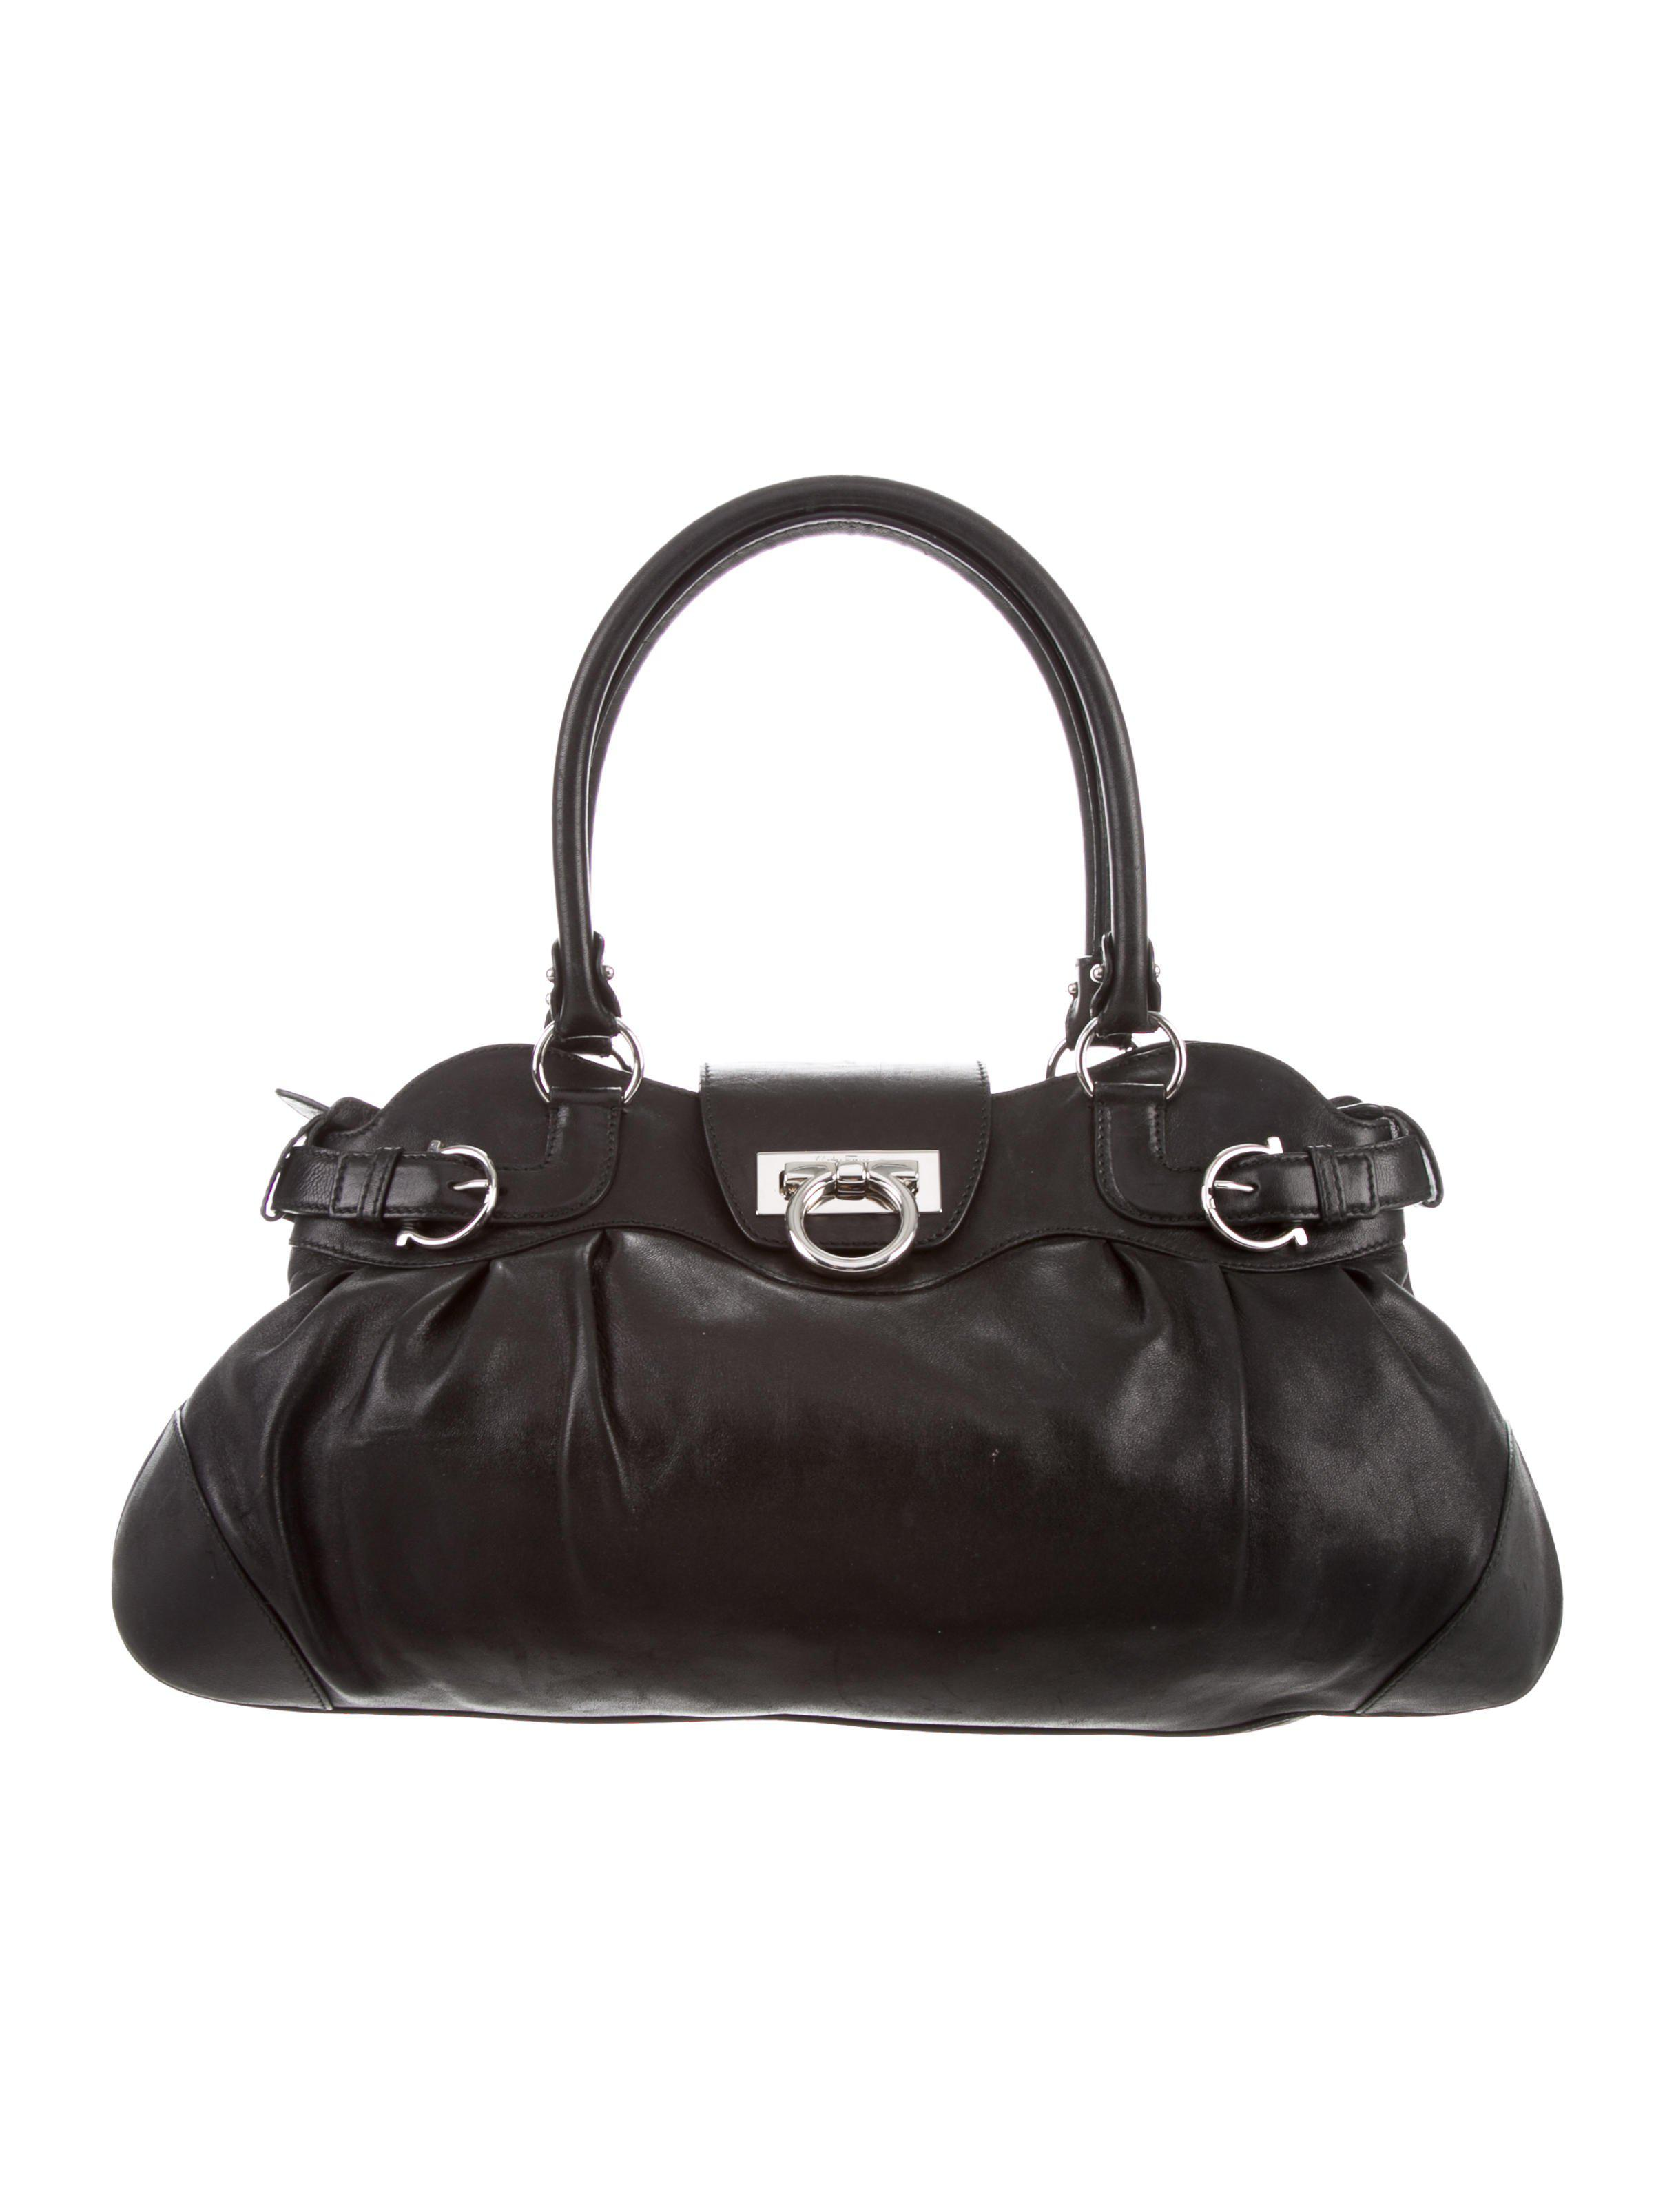 b6f8d685823c Lyst - Ferragamo Leather Marisa Bag Black in Metallic